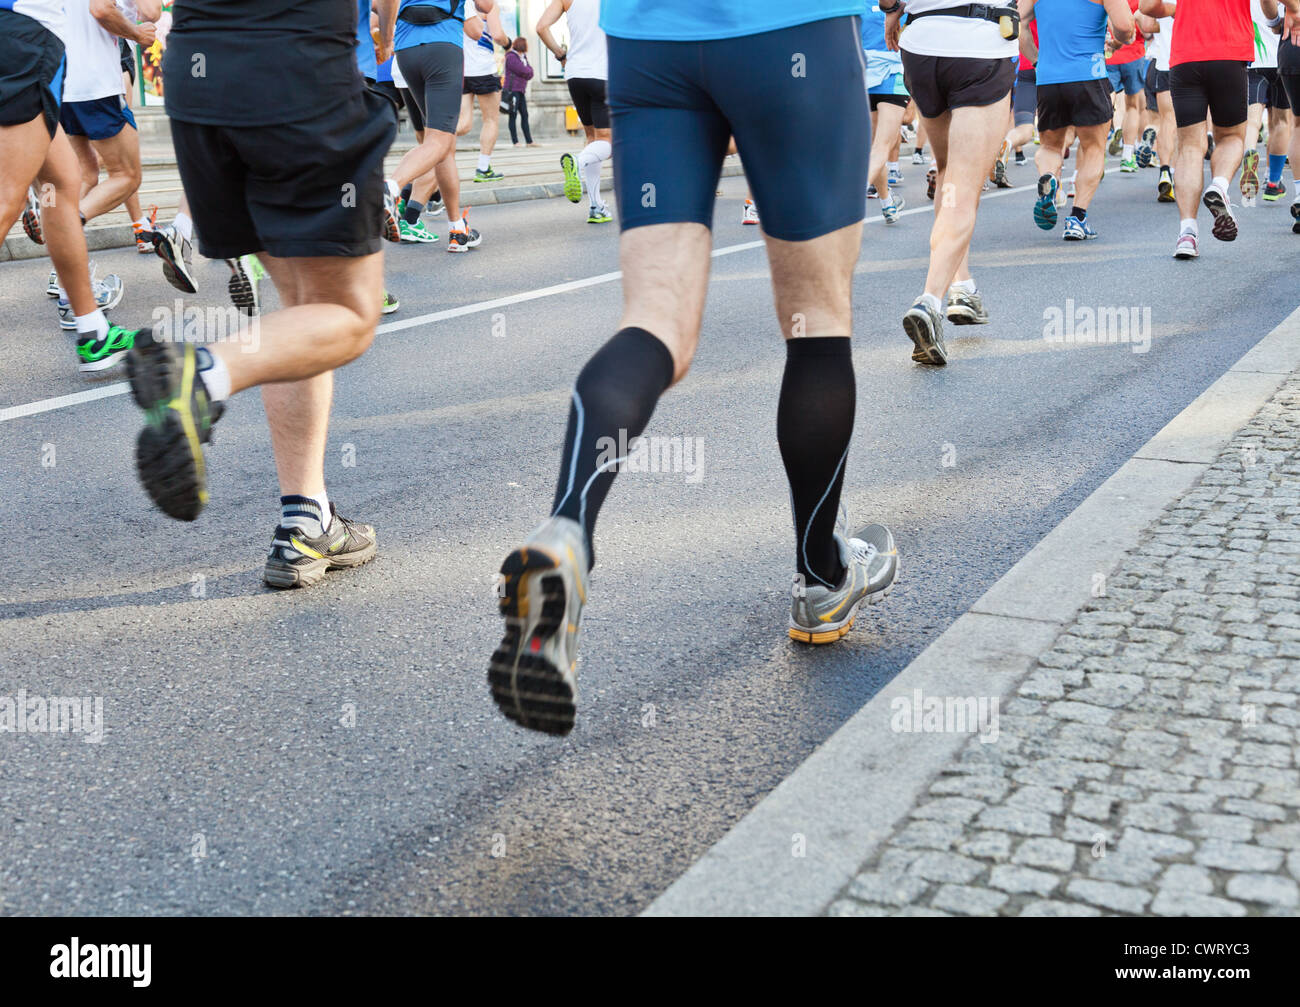 People running fast in a city marathon on street - Stock Image